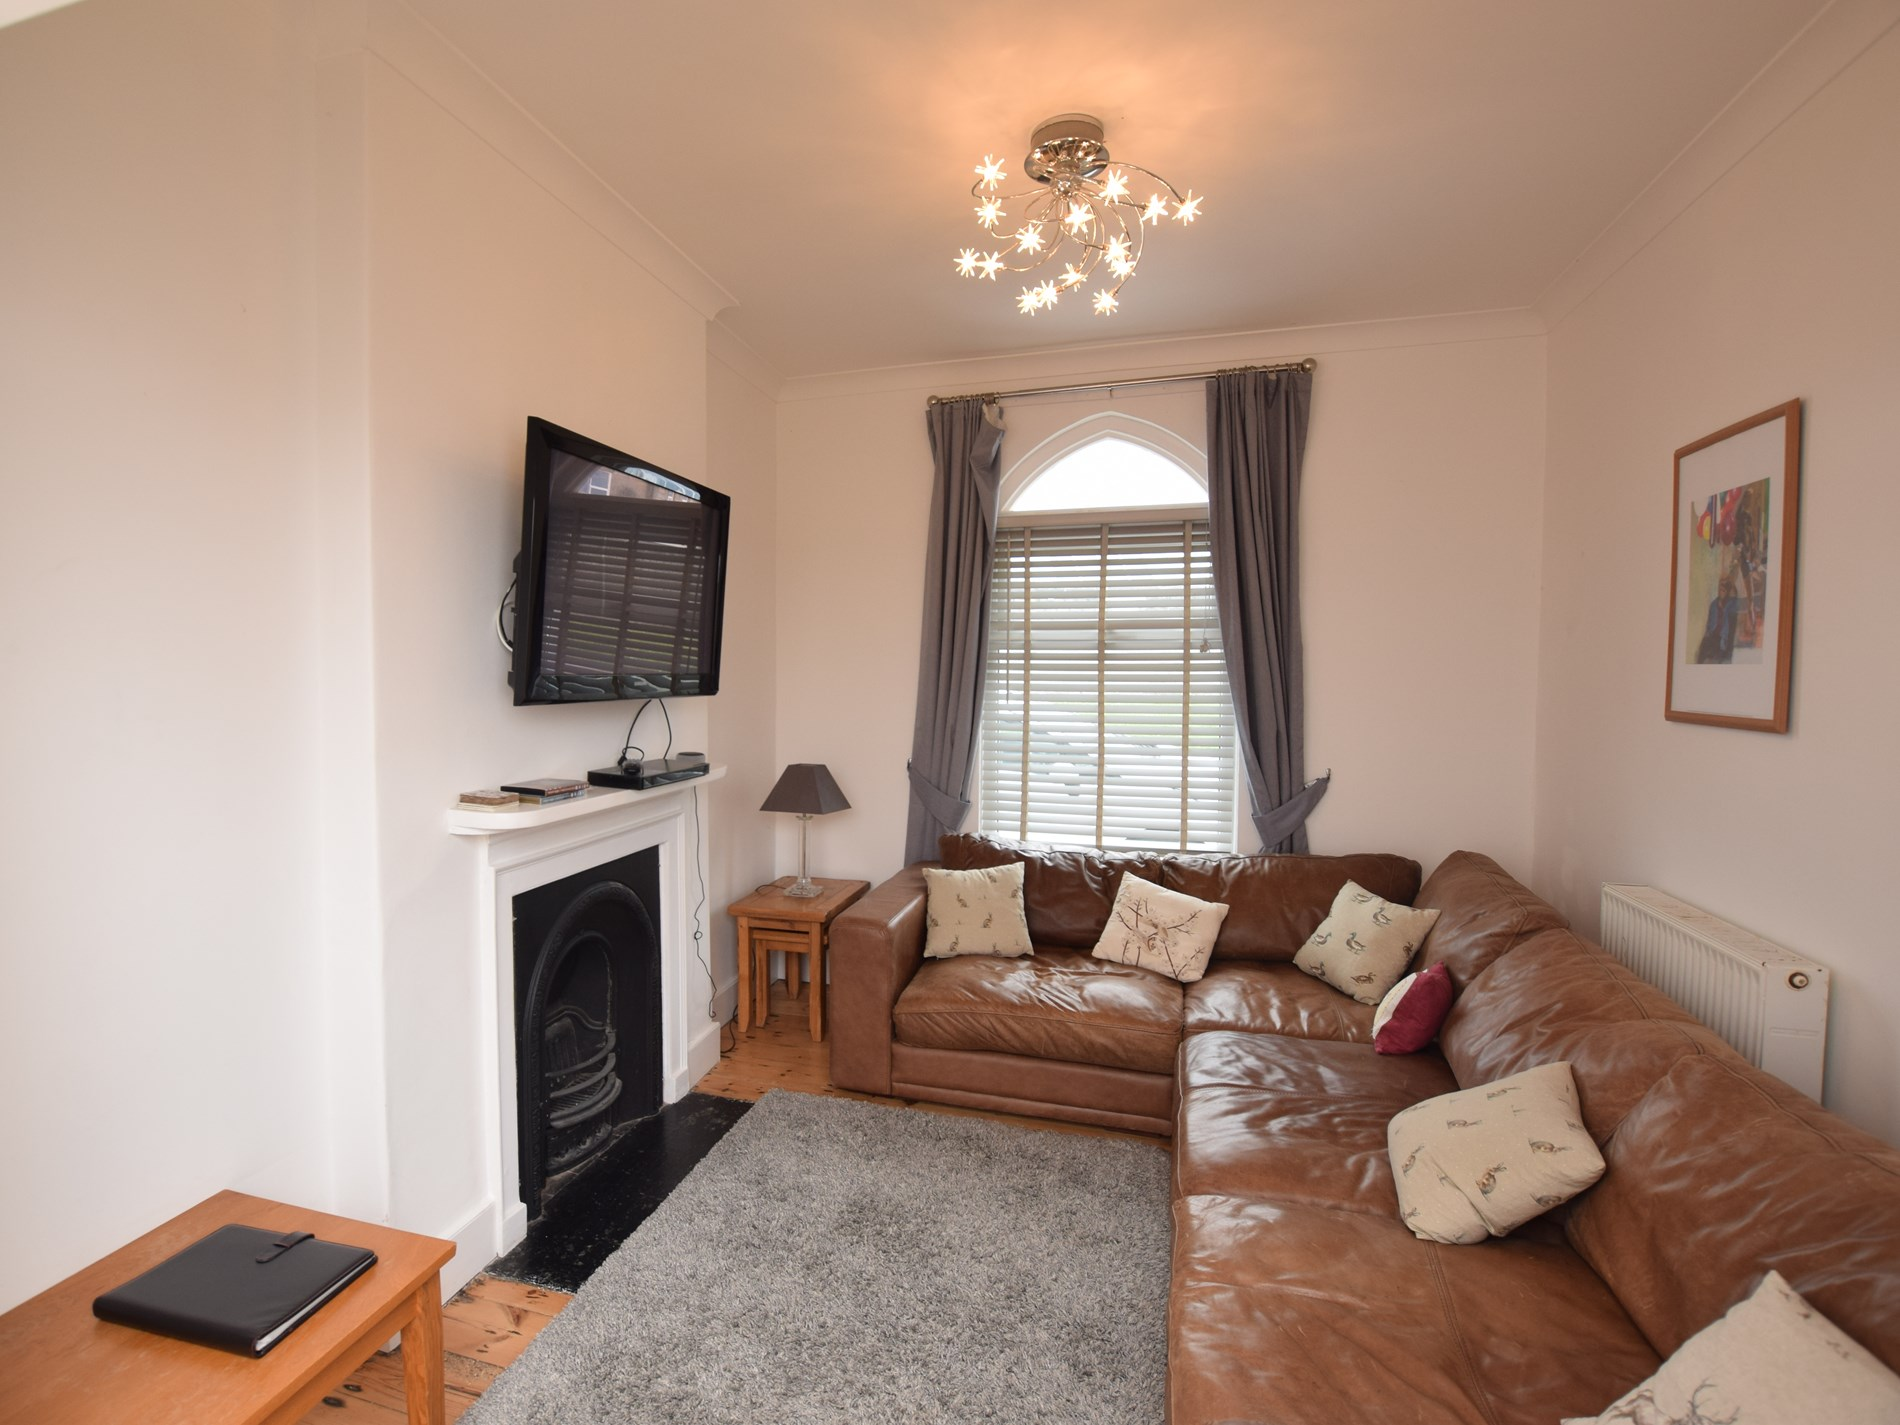 3 Bedroom Cottage in Newquay, Cornwall